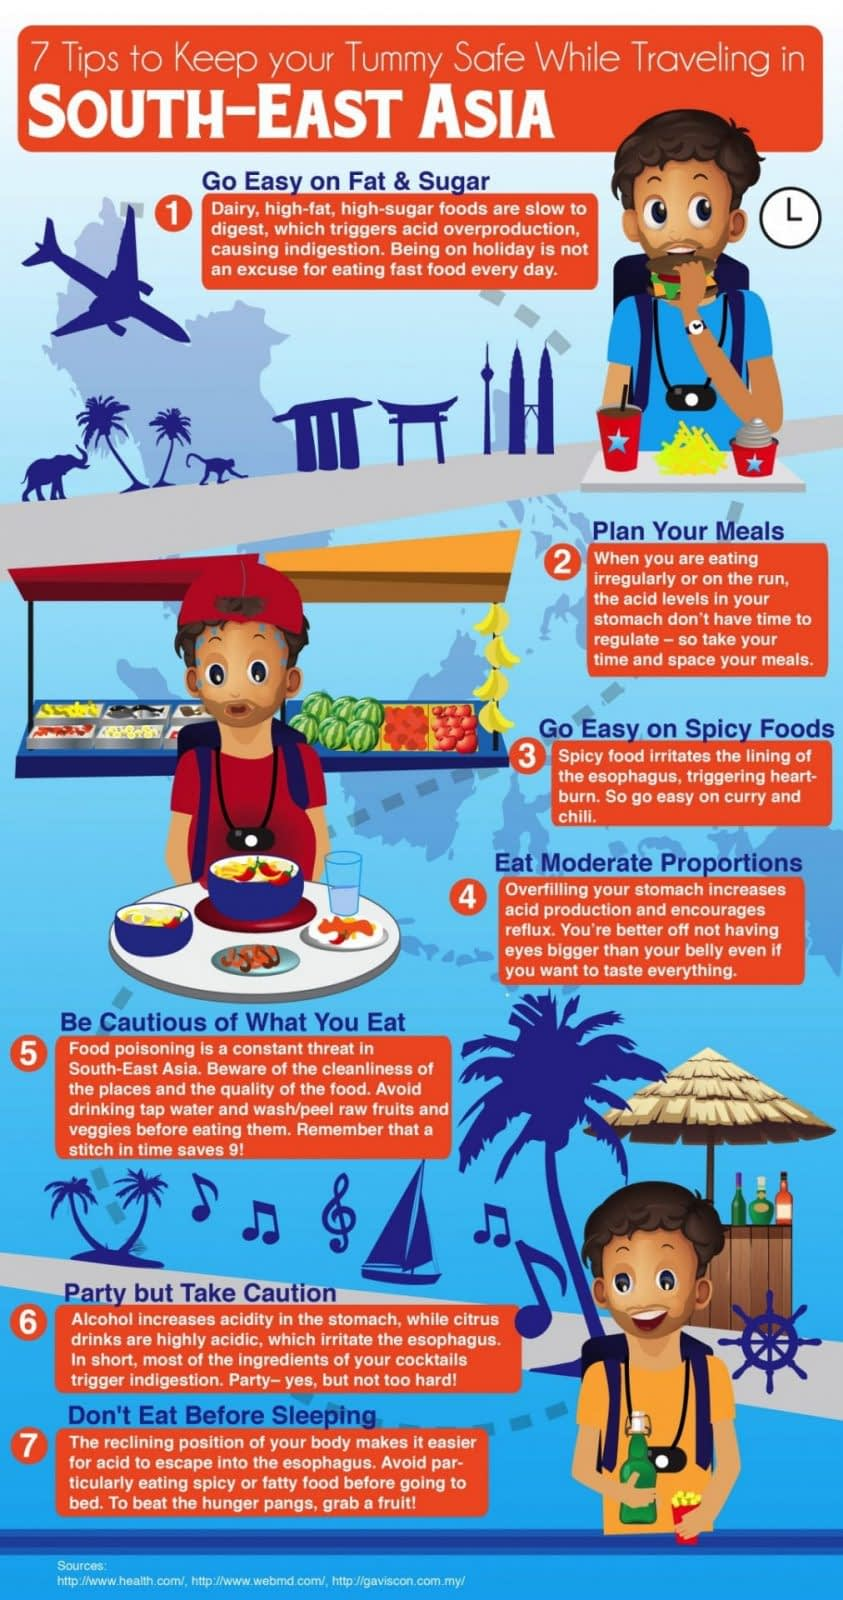 7 tips to keep your tummy safe while travelling in South-East Asia